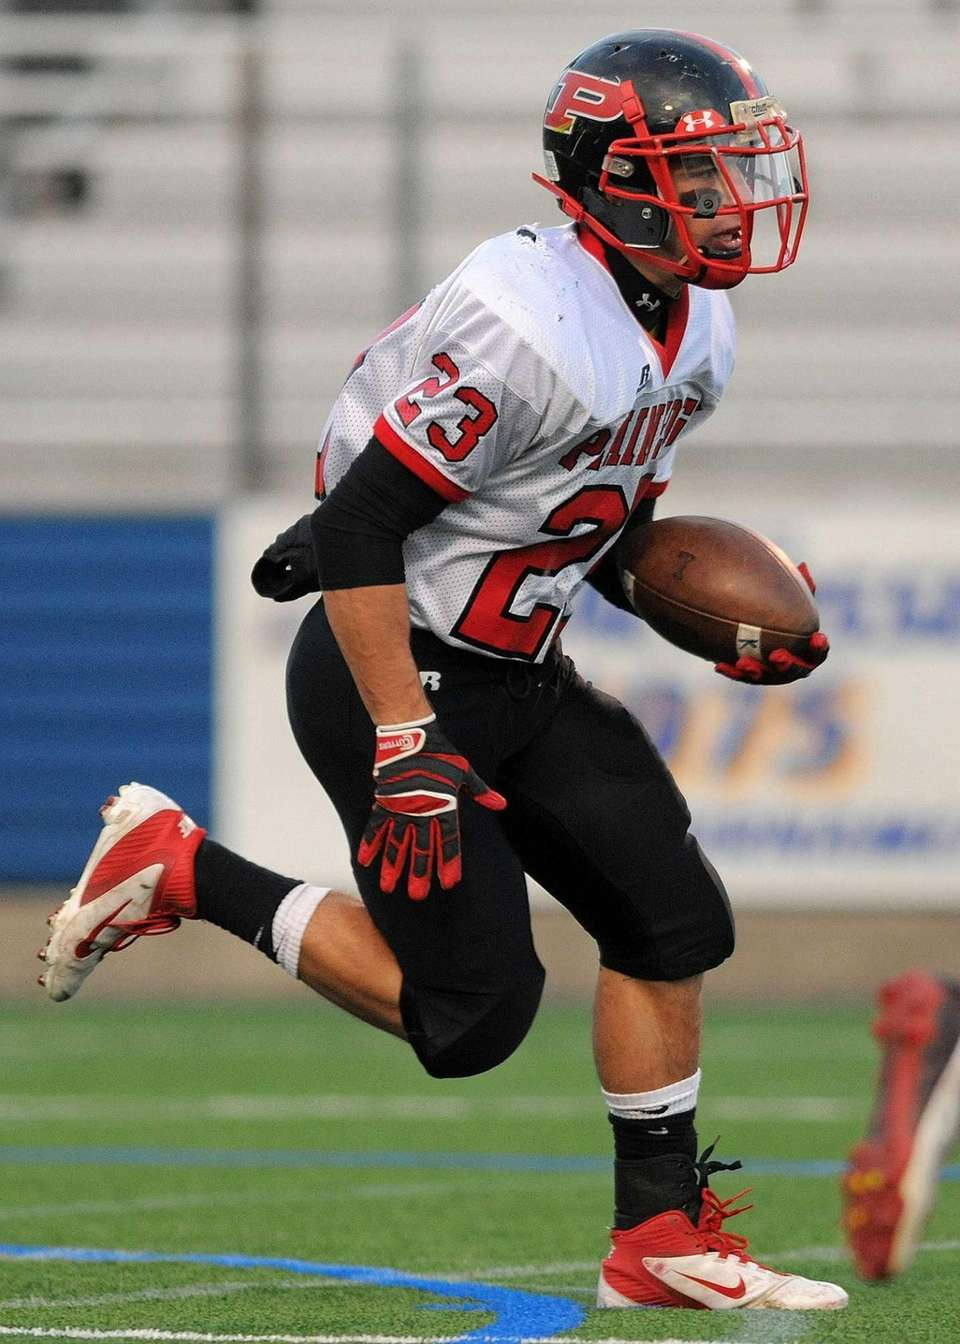 Plainedge's Gianfranco Soriente returns the opening kickoff in